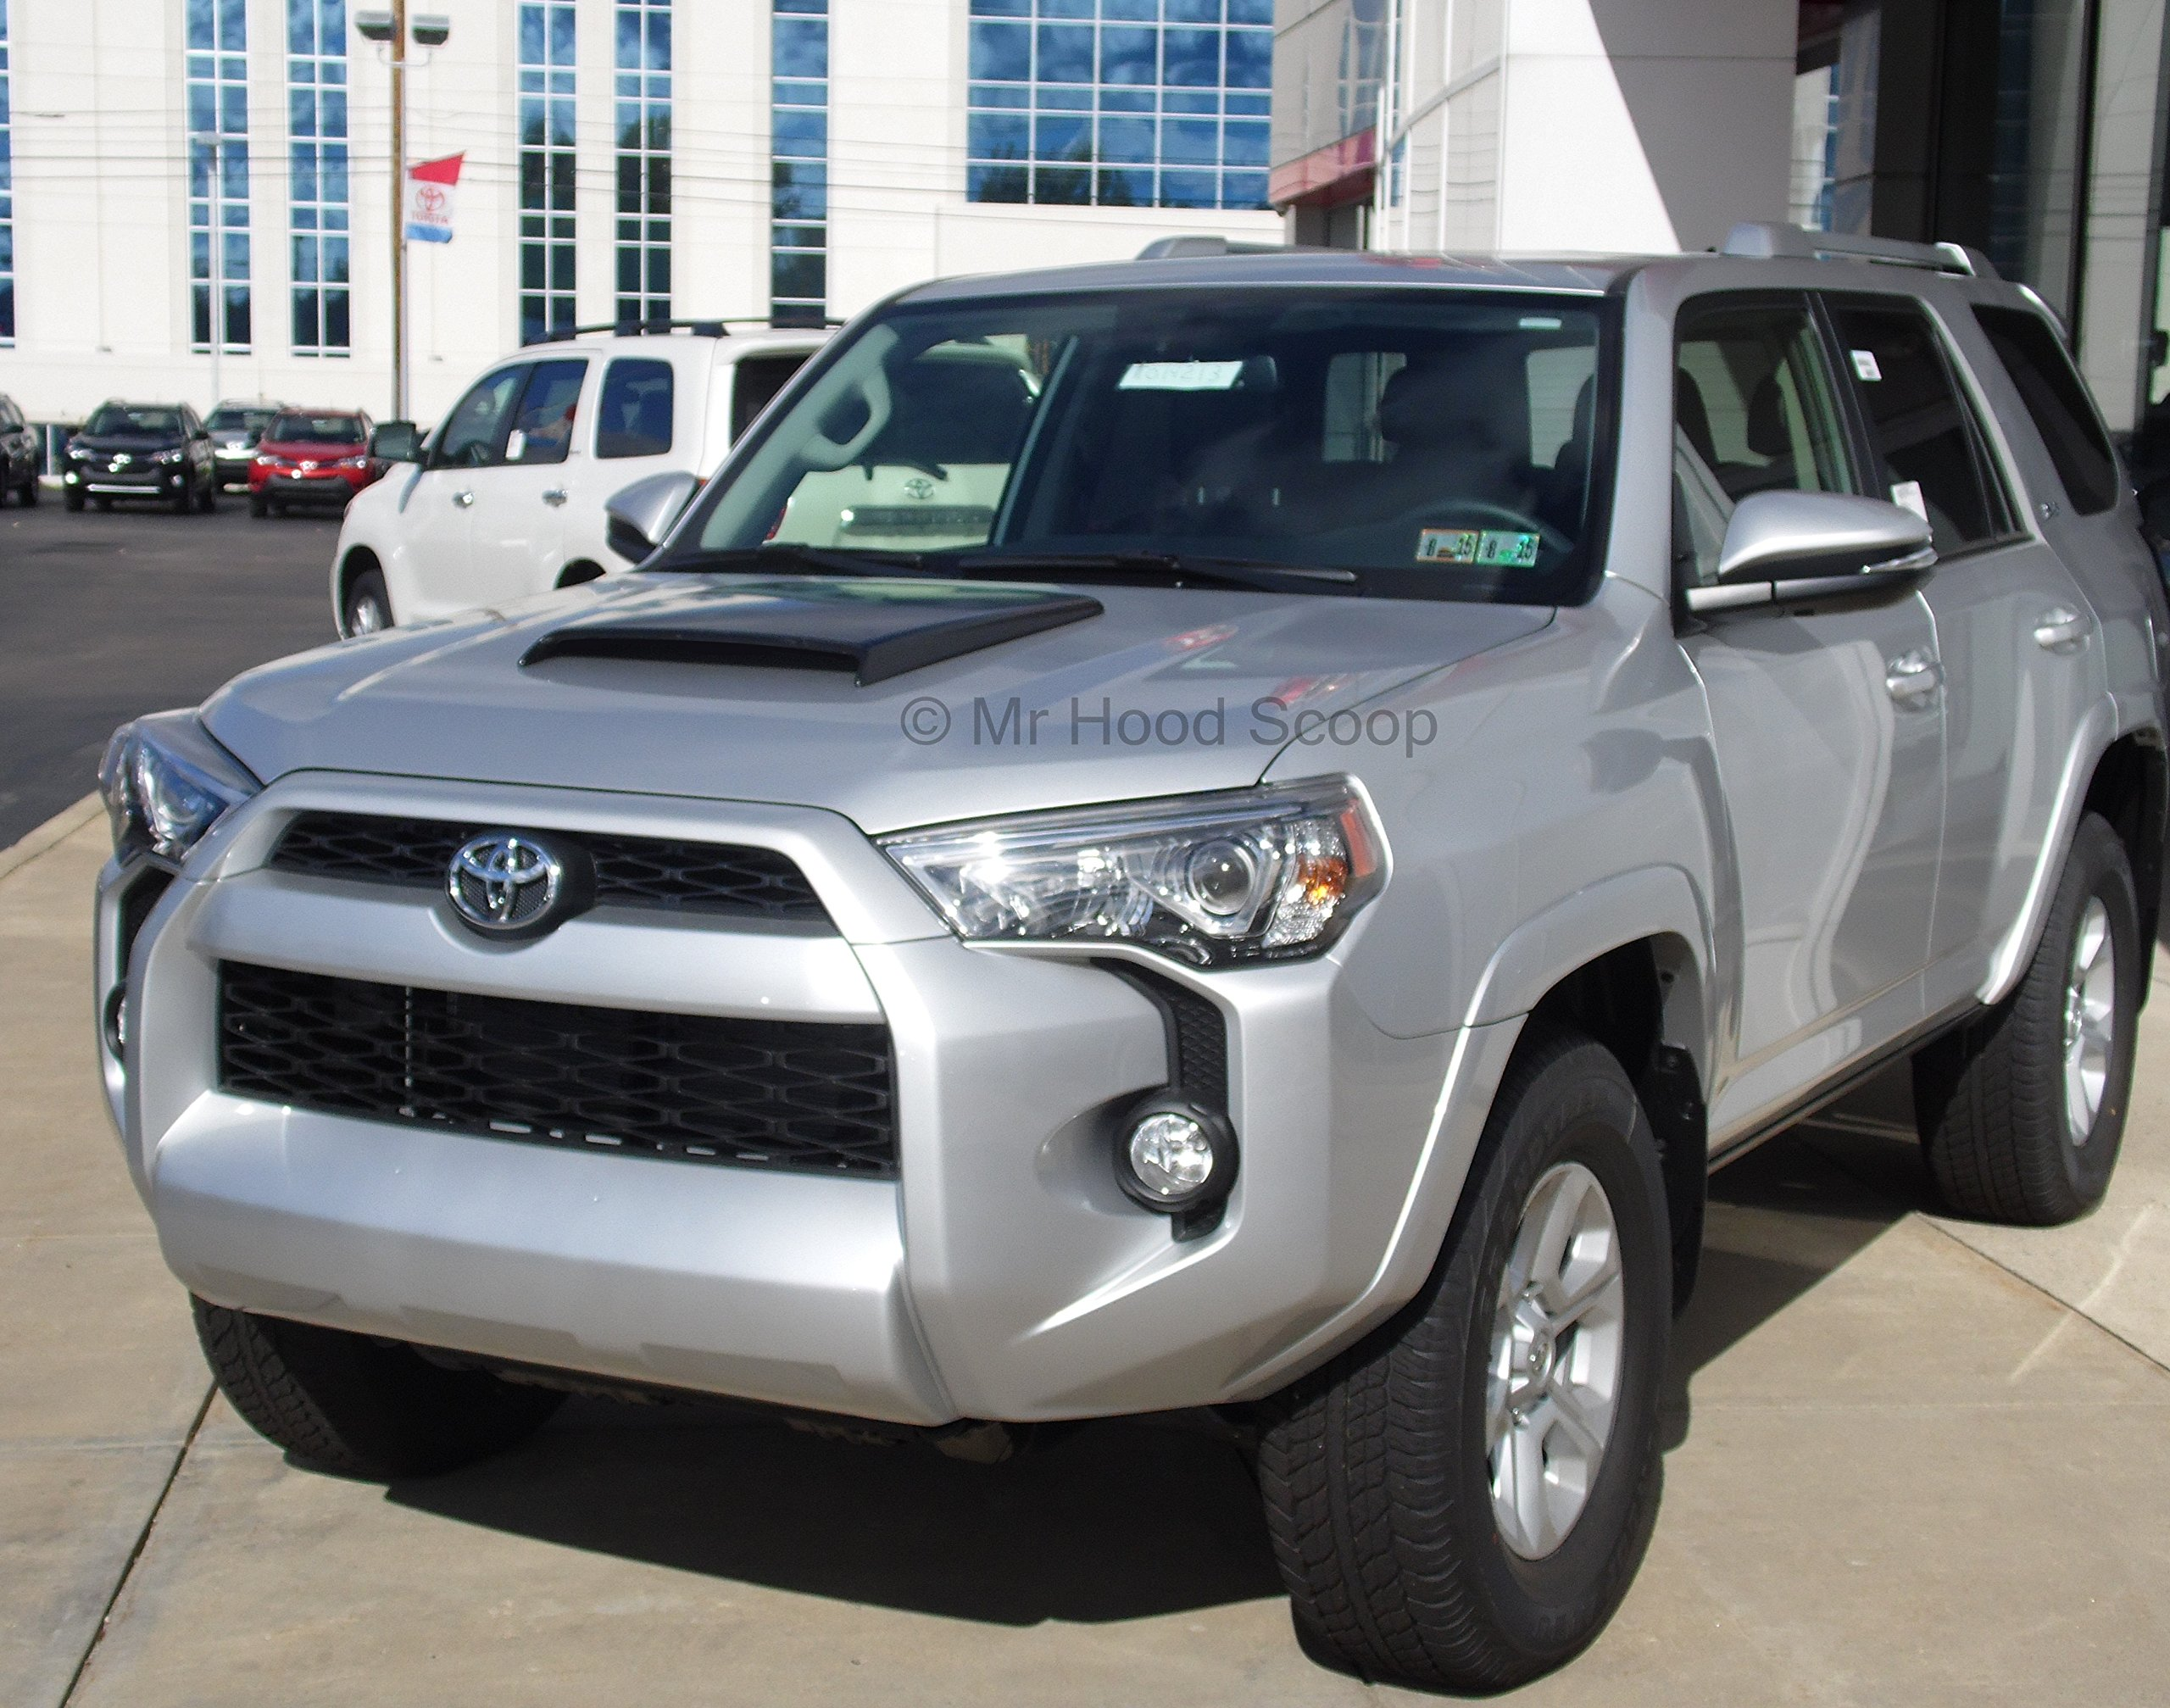 1984-2017 Hood Scoop for Toyota 4runner by MrHoodScoop UNPAINTED HS003 by Xtreme Autosport